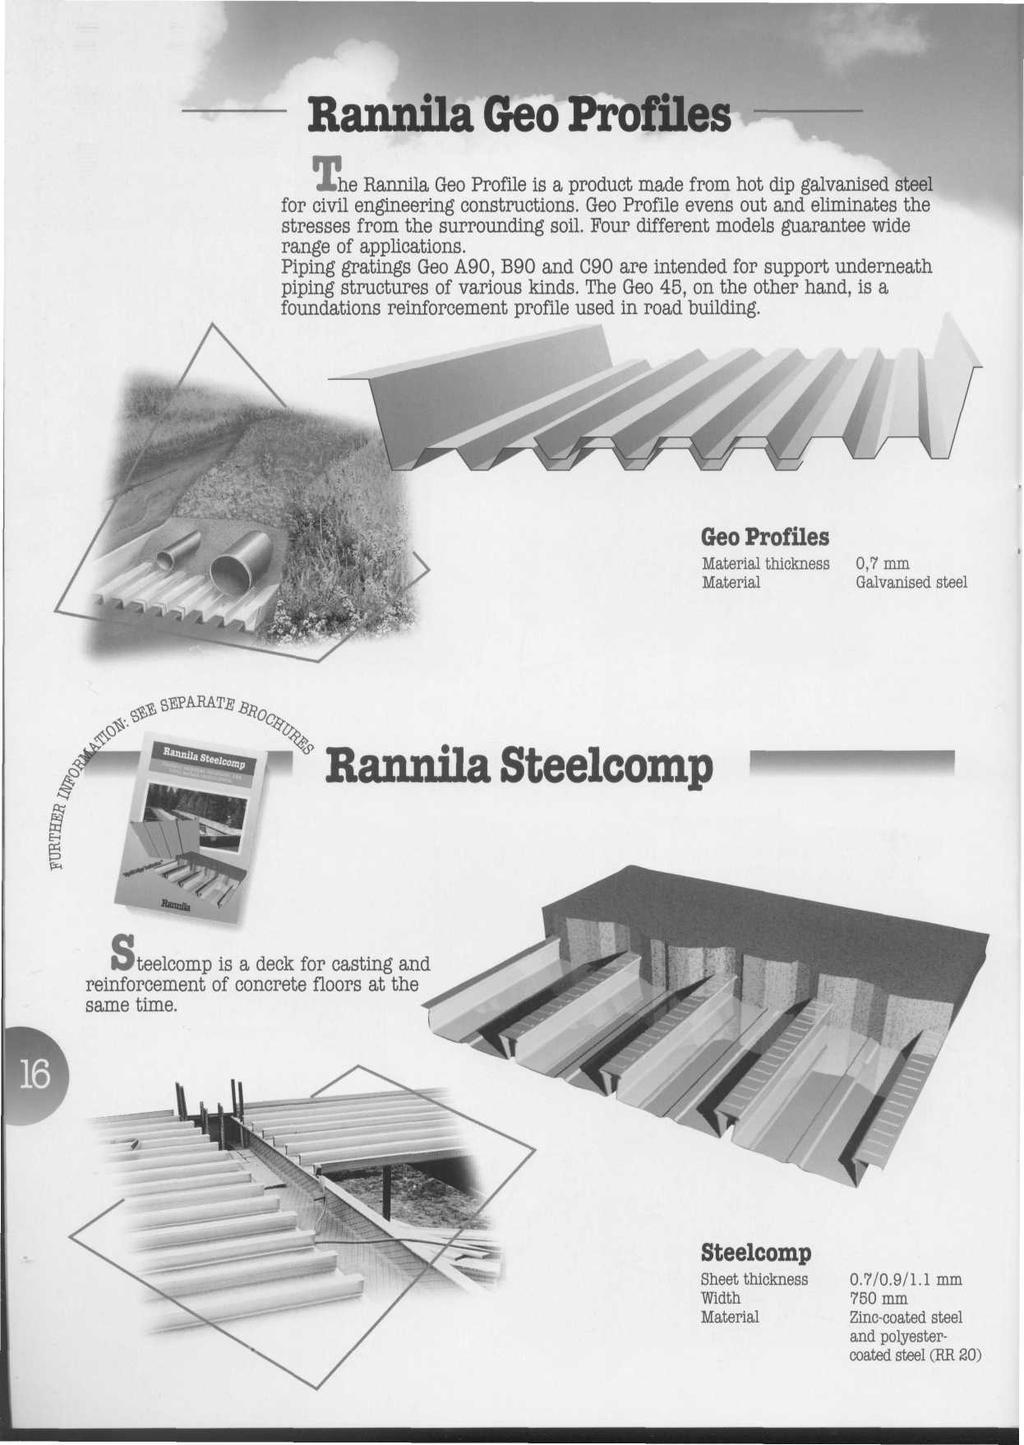 Rannila Geo Profiles he Rannila Geo Profile is a product made from hot dip galvanised steel for civil engineering constructions.